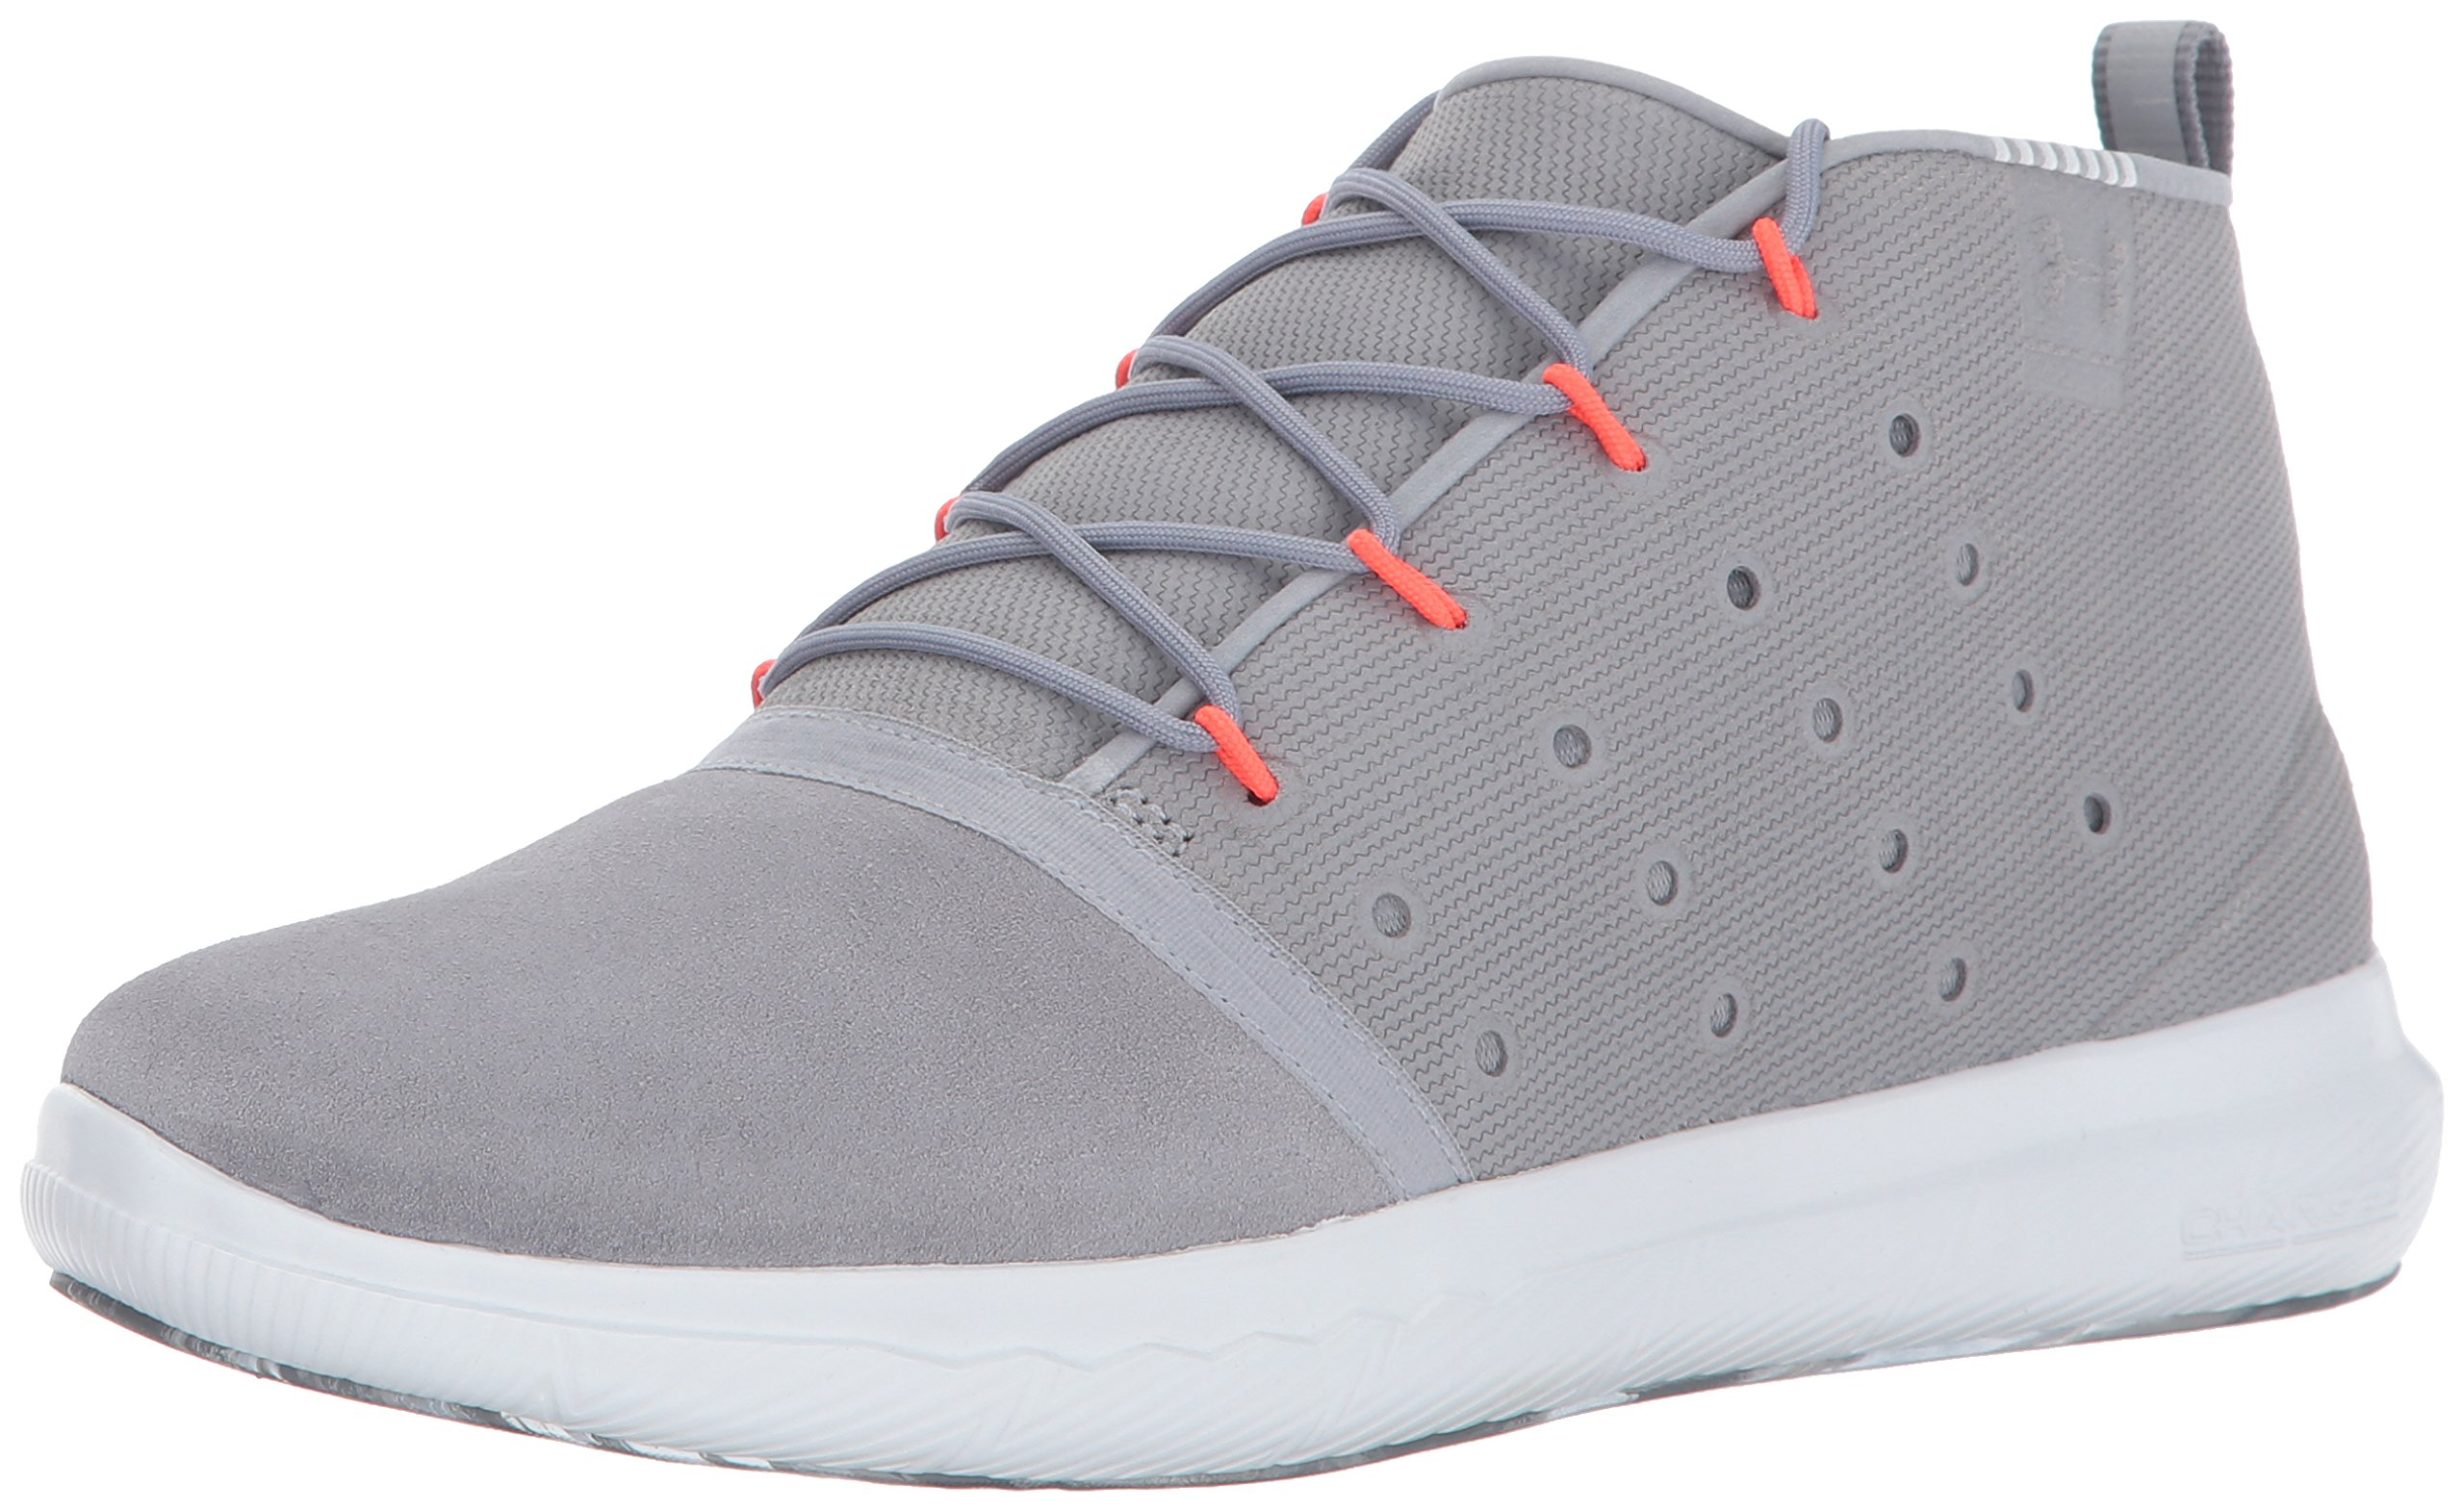 Under Armour Women's Charged 24/7 Mid Marble Sneaker, Steel (035)/Overcast Gray, 7.5